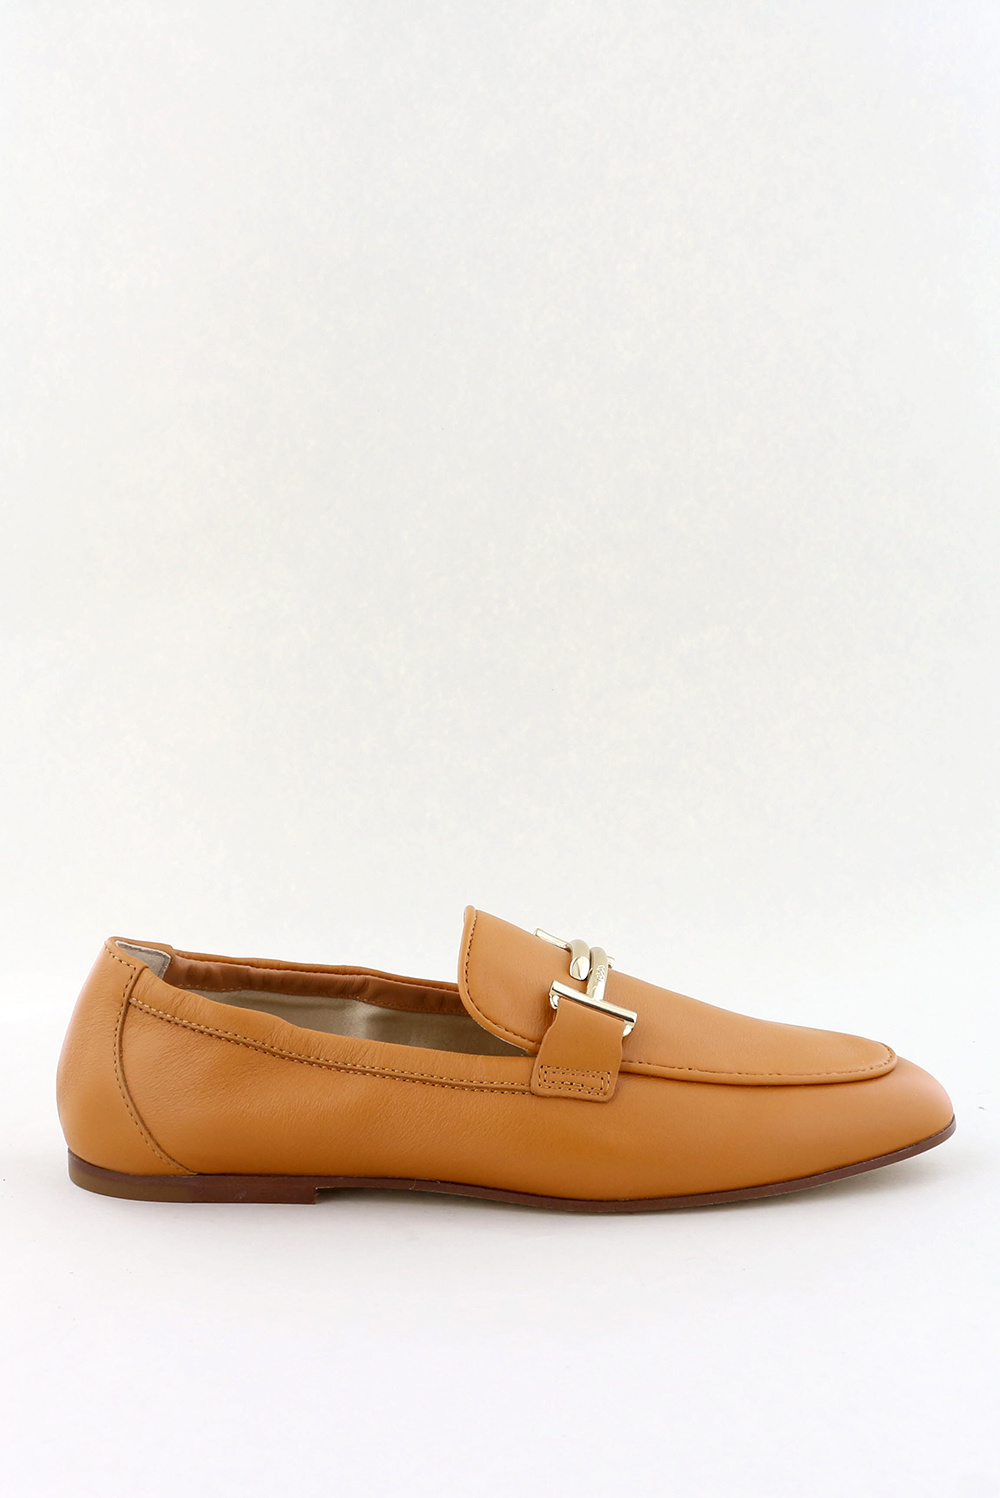 Tods loafers XXW79A0X010MIDS002 cognac